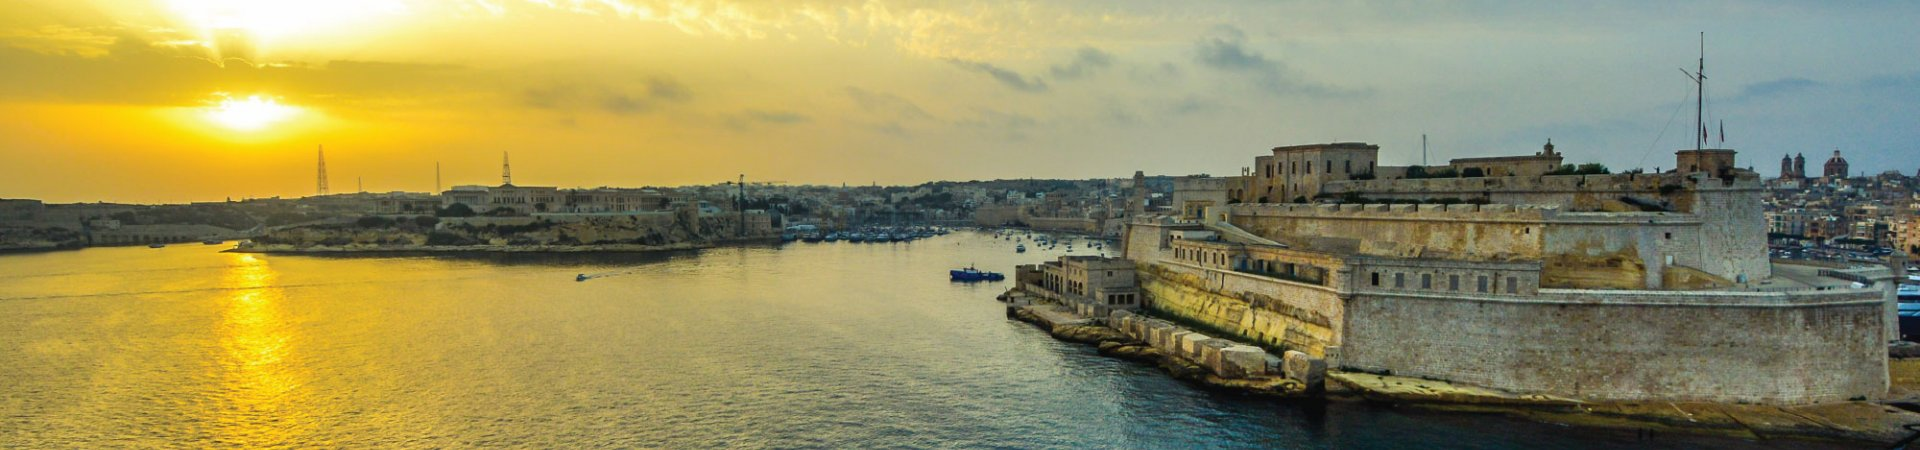 Yachting Gauci and Partners Advocates, malta law firm, malta lawyers, legal services malta, tax services malta, corporate law malta, commercial law malta, finance law malta, marine law malta